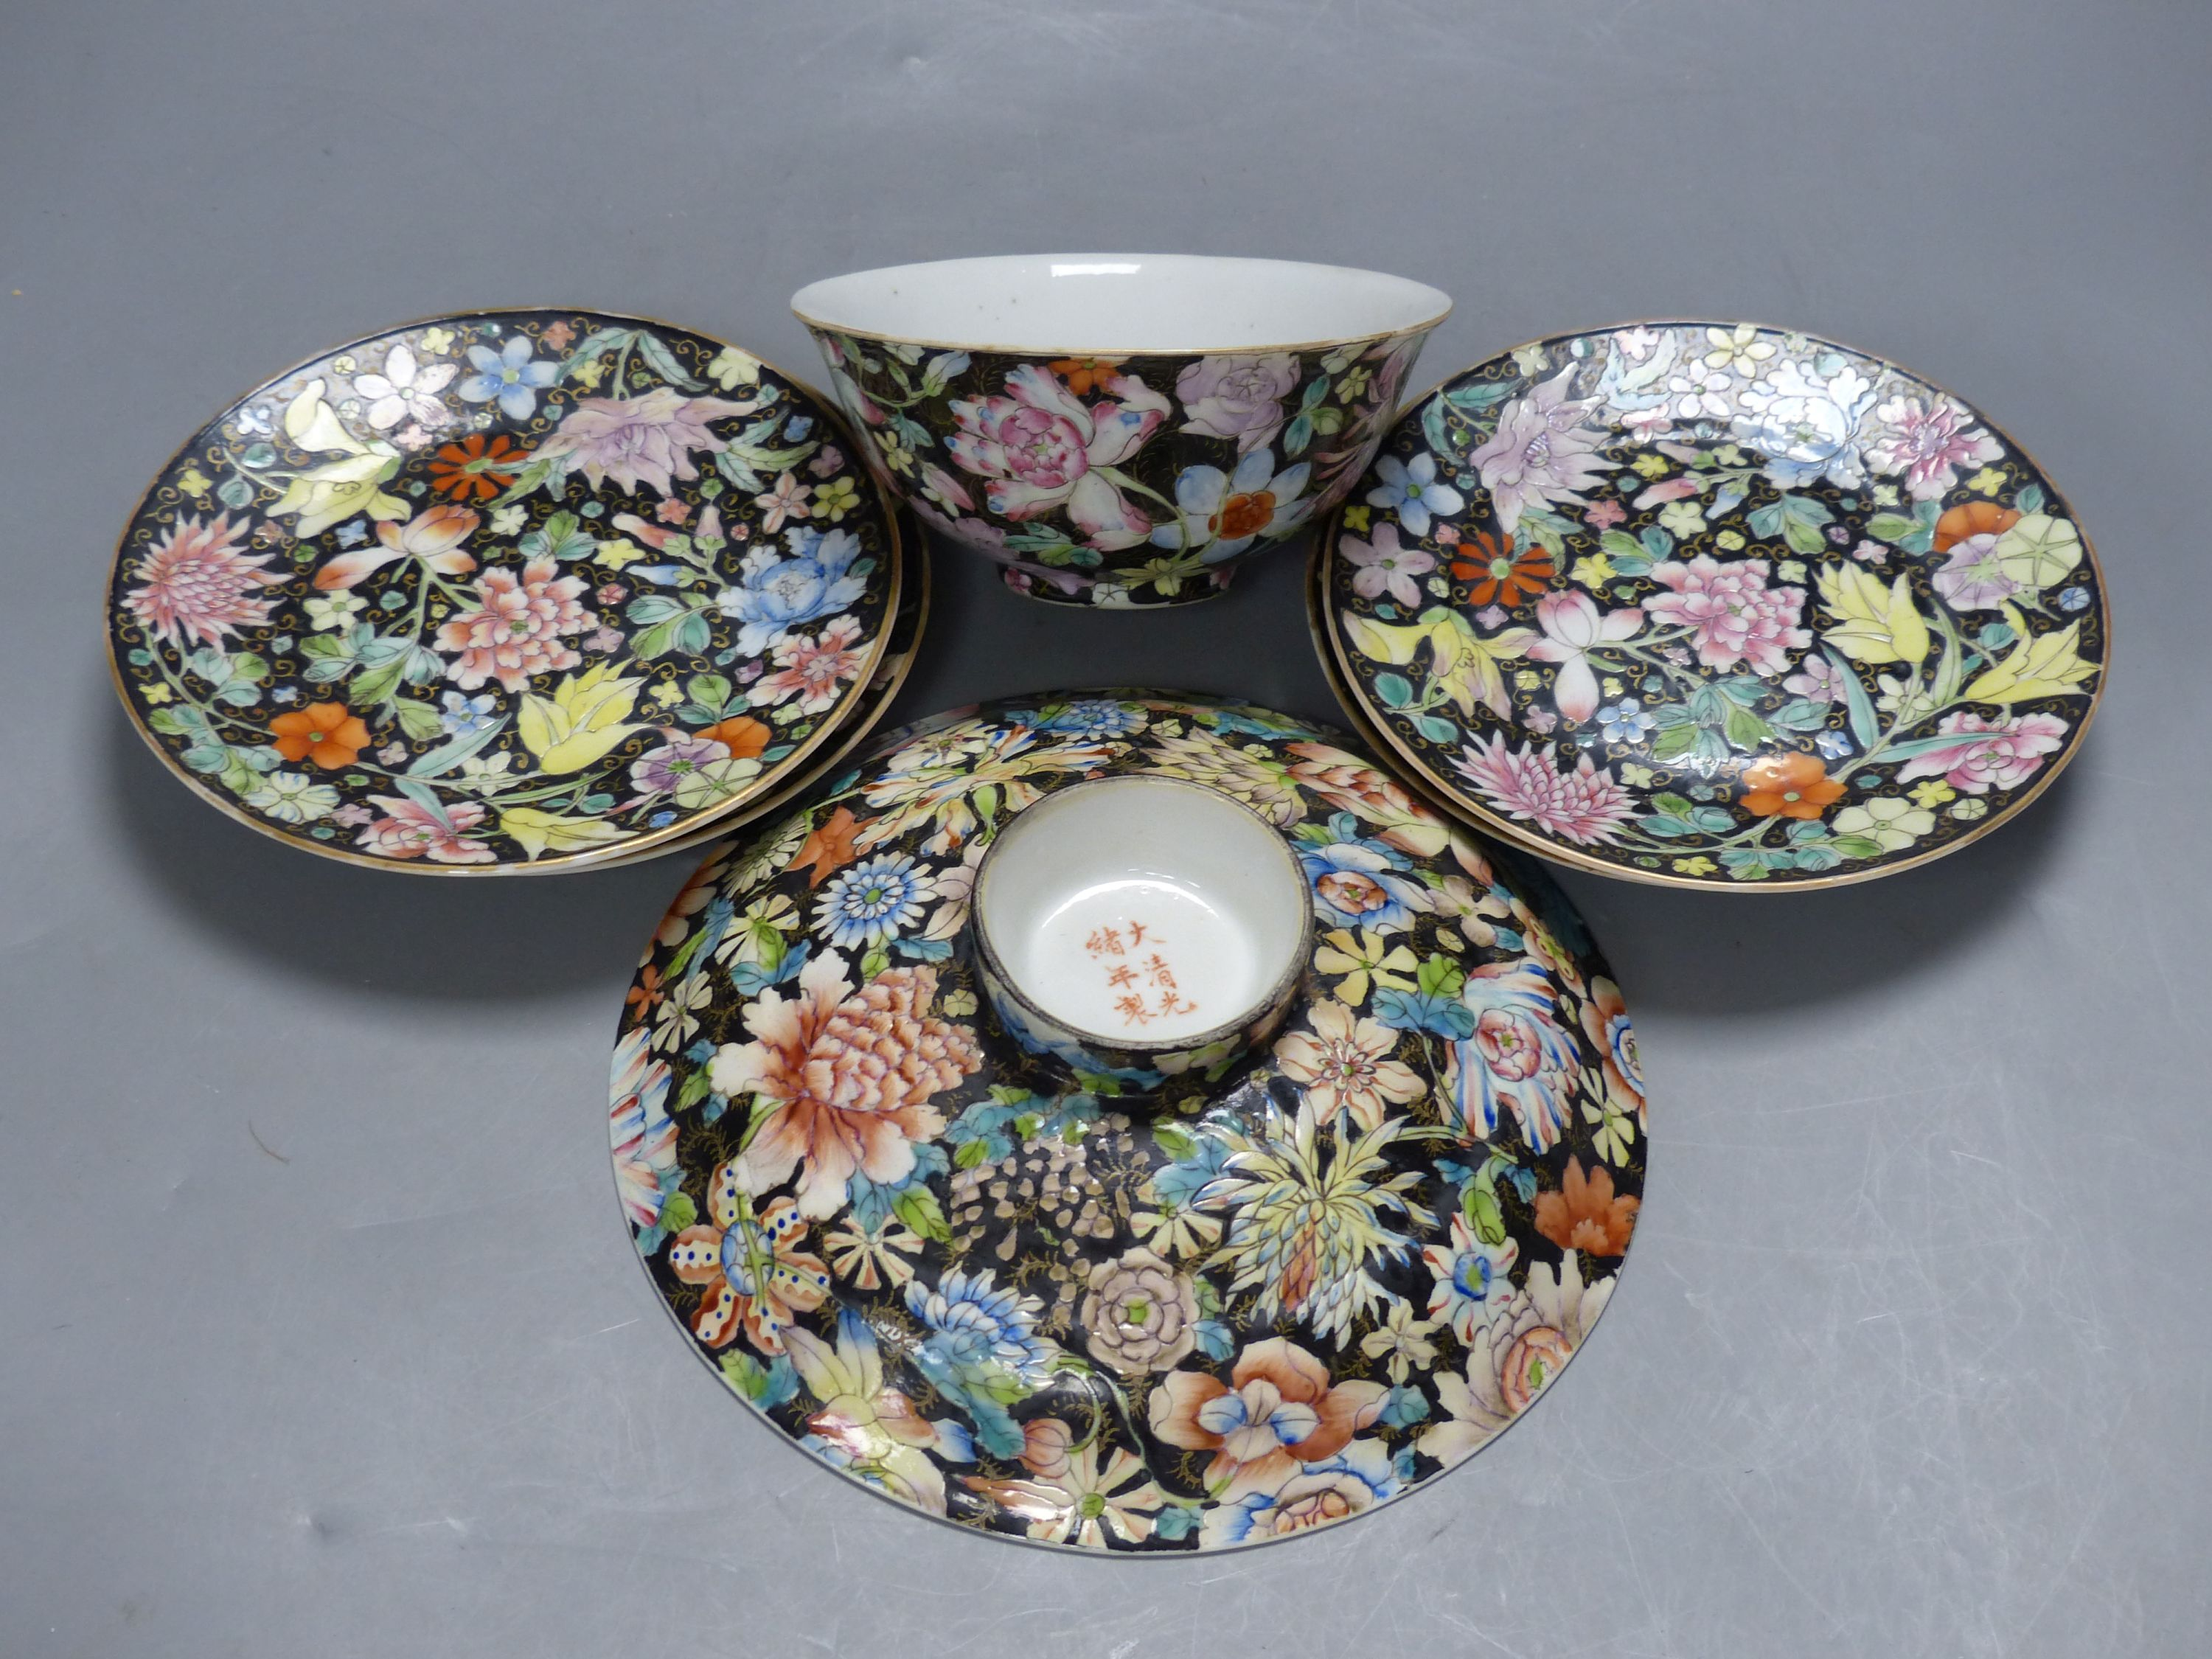 A Chinese millefleur bowl, rice bowl, cover and four plates, Guangxu mark, early 20th century - Image 2 of 4